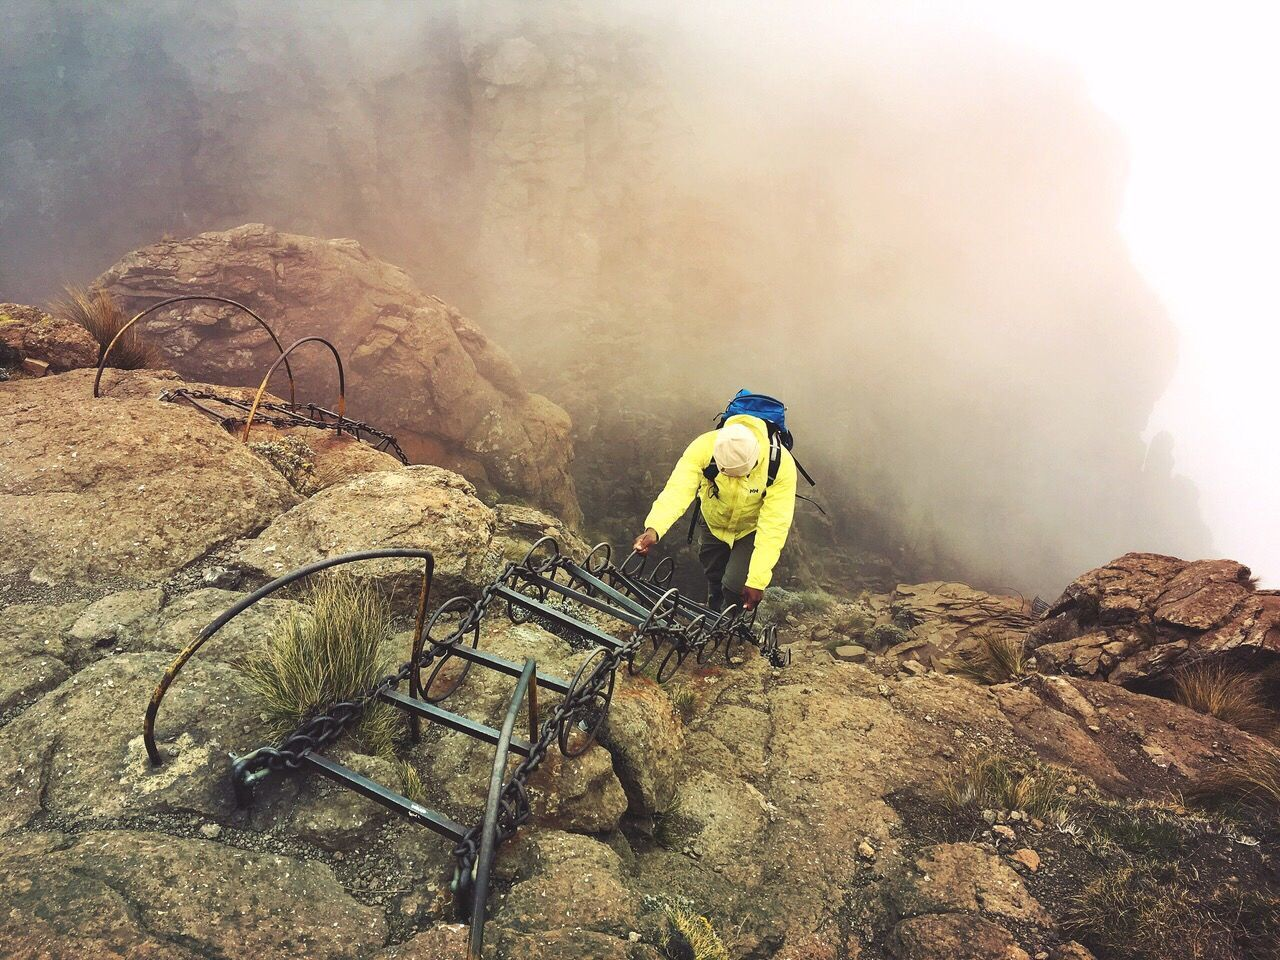 The Great Outdoors - 2017 EyeEm Awards Drakensberg, South Africa Chain Ladder Hiking Adventures Climber Mountaineer Rock Formation Rockface Man